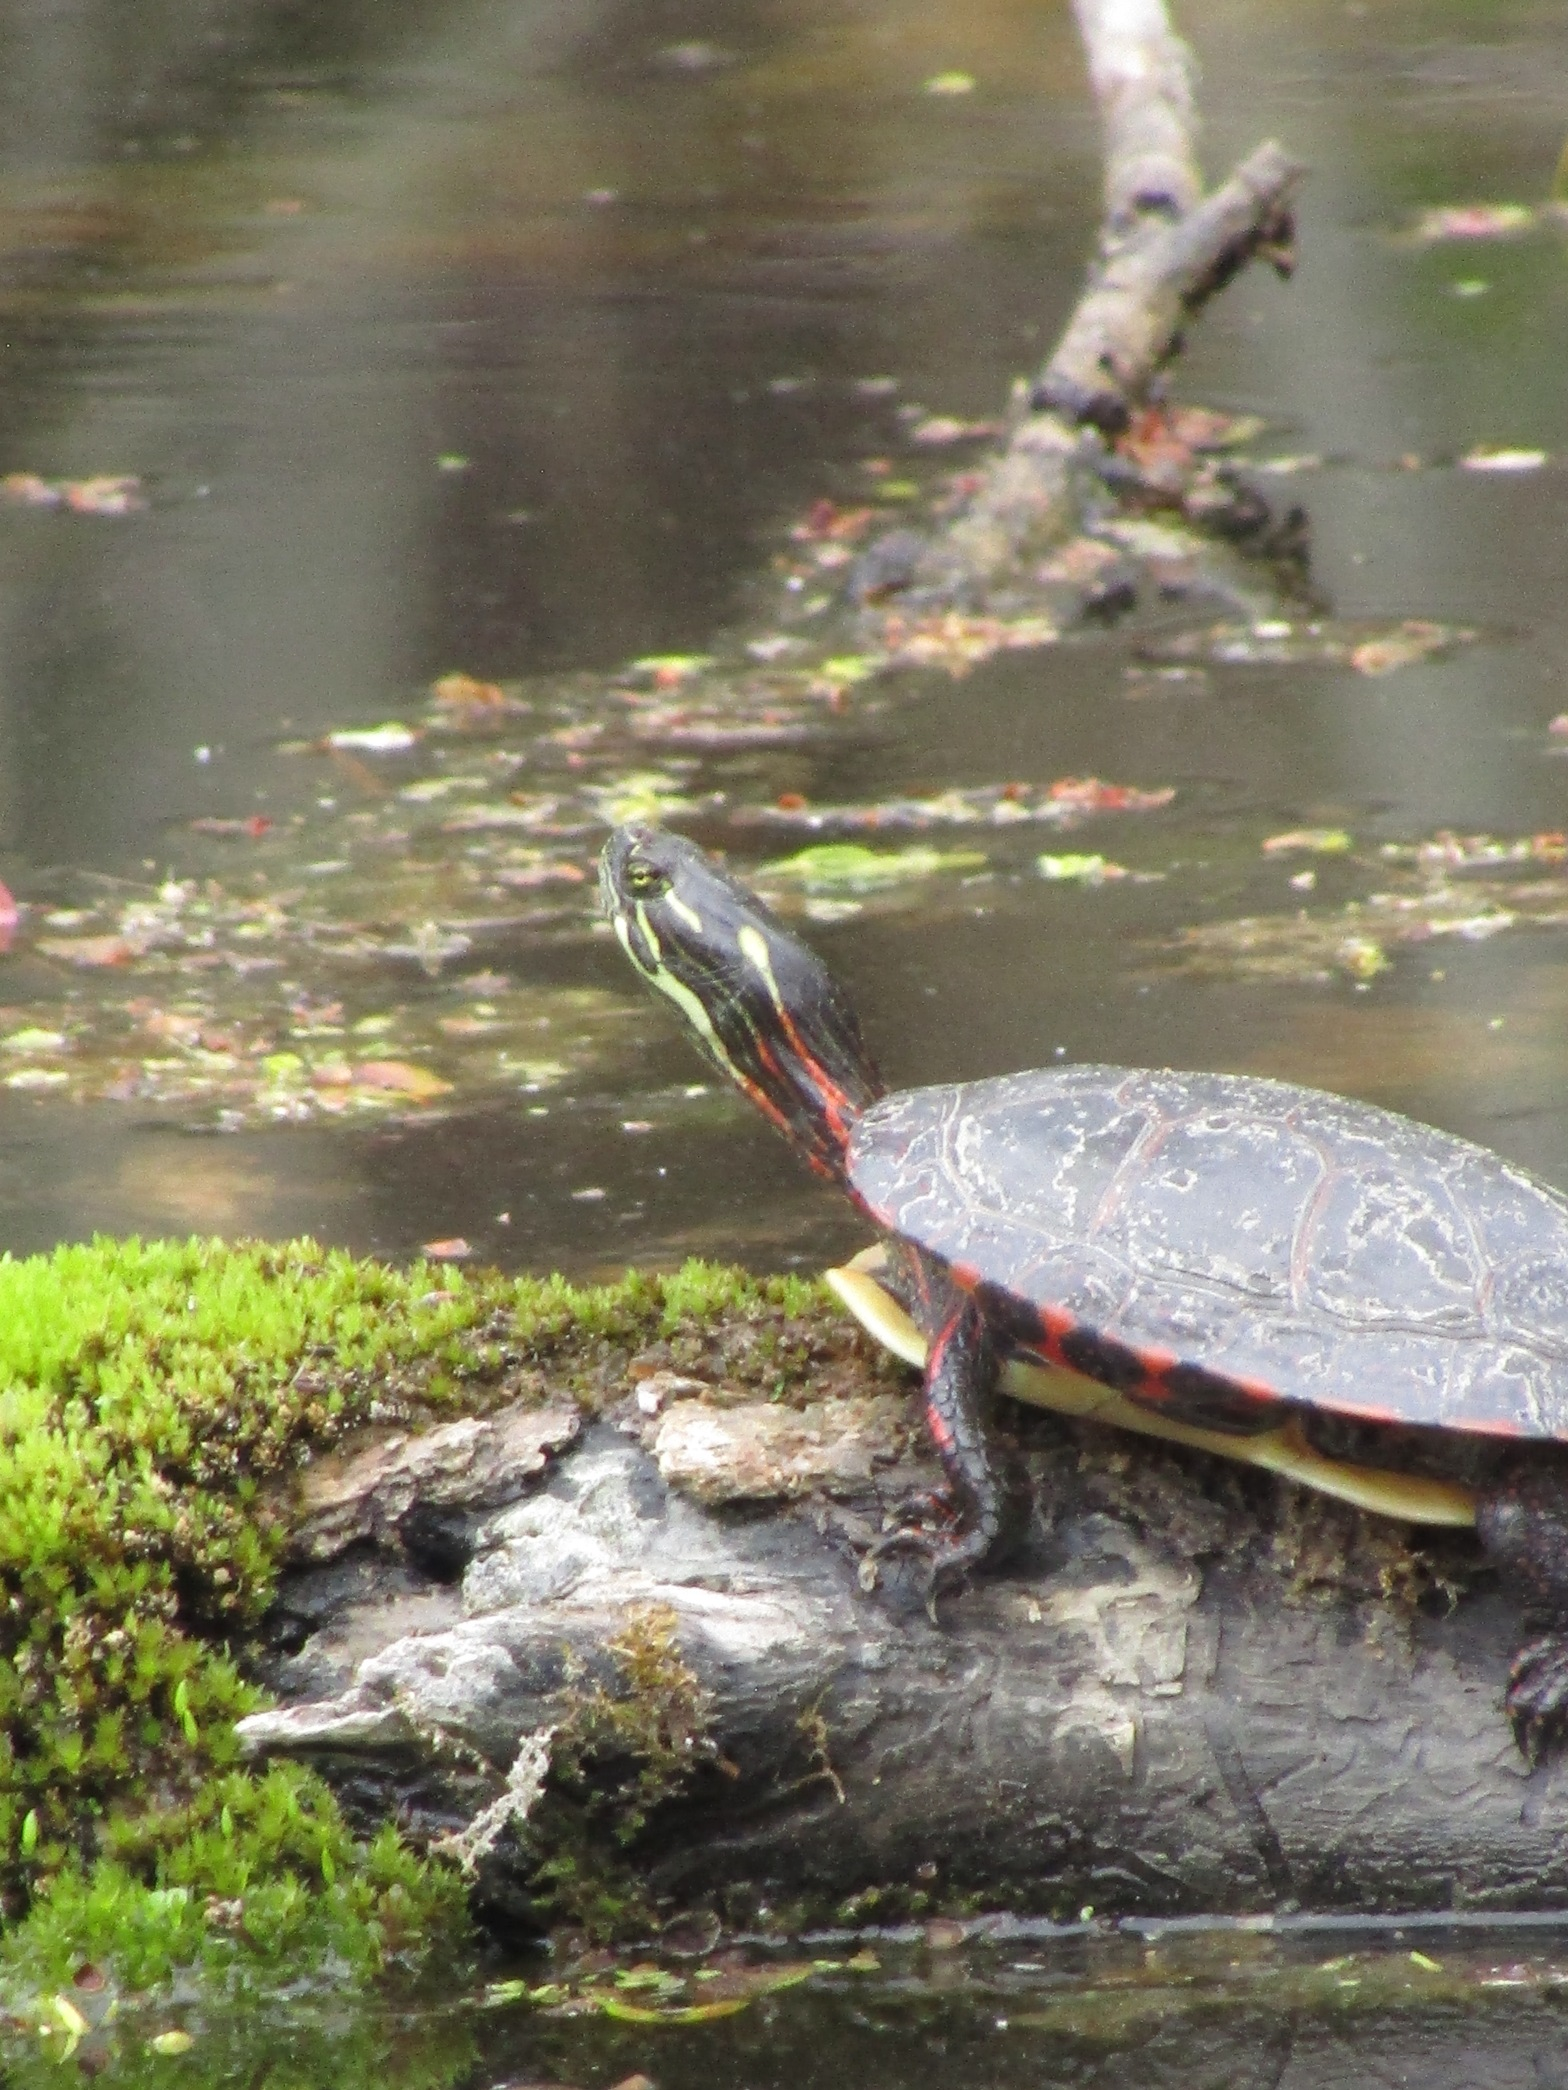 A painted turtle basking on a log in a pond.